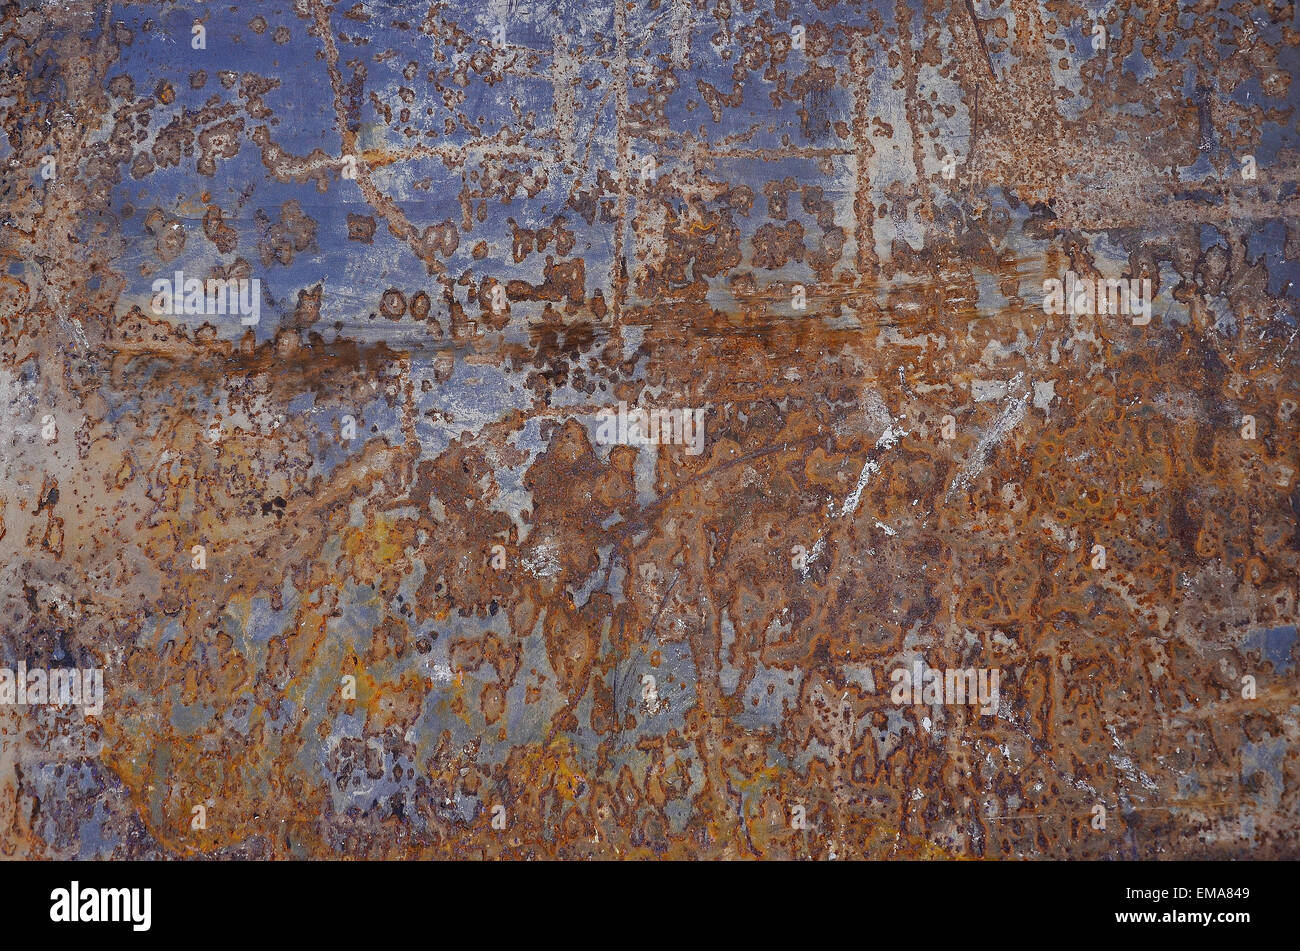 A blue reflection of the sky on a rusty steel plate at road works in France - Stock Image